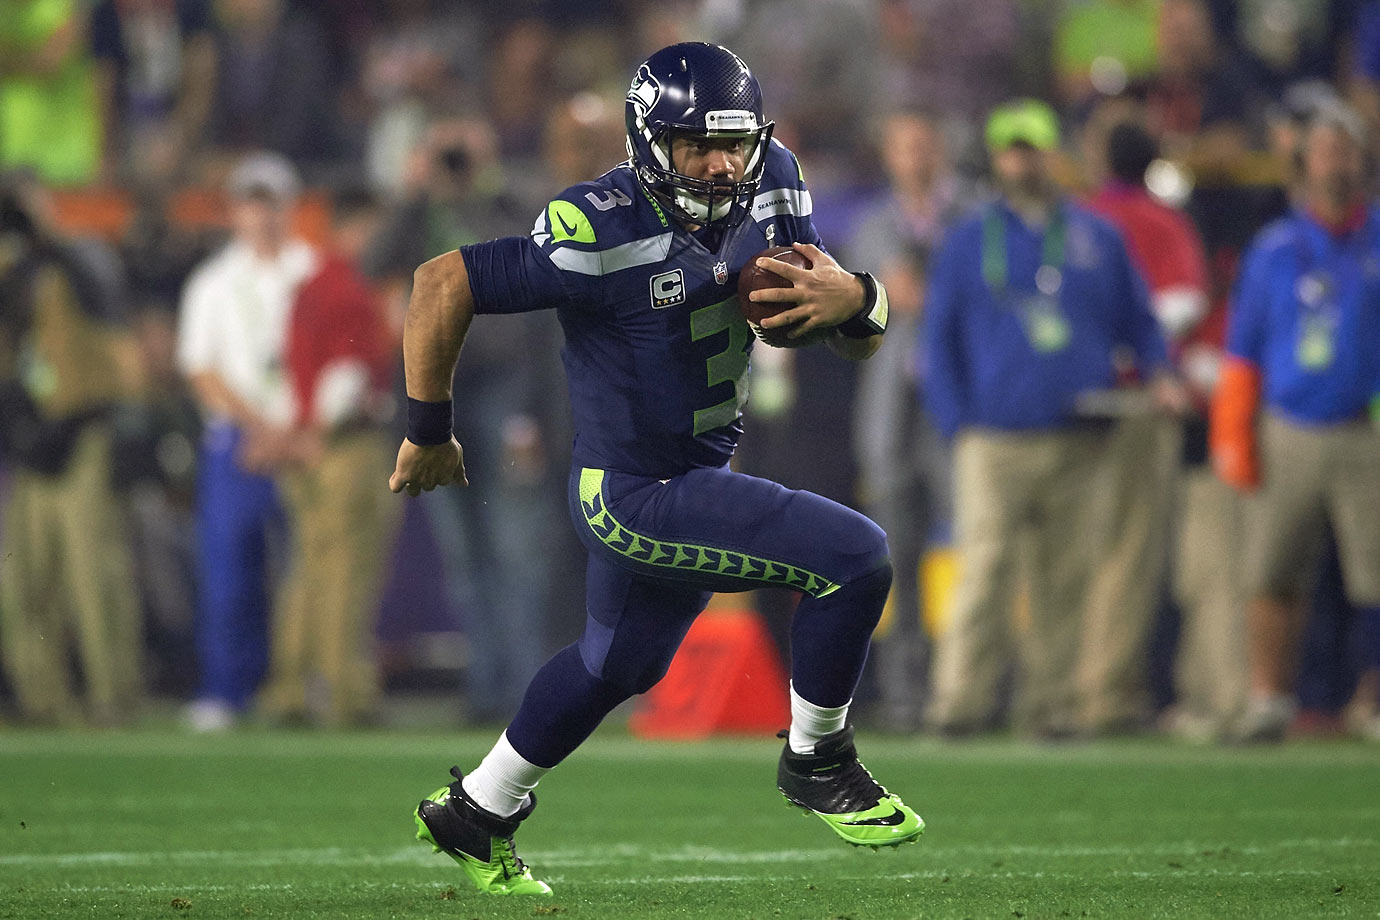 During last season's playoffs, Wilson did a lot to prove that he can stand in the pocket and fire the ball downfield with the best of them. He led all quarterbacks with 12 completions on 19 deep attempts, for 422 yards, three touchdowns and one interception. If he can build on that with new targets Jimmy Graham and Tyler Lockett and maintain his threat as a read-option runner, Wilson may indeed prove to be worth the huge contract he wants. This is the year he has to prove it.